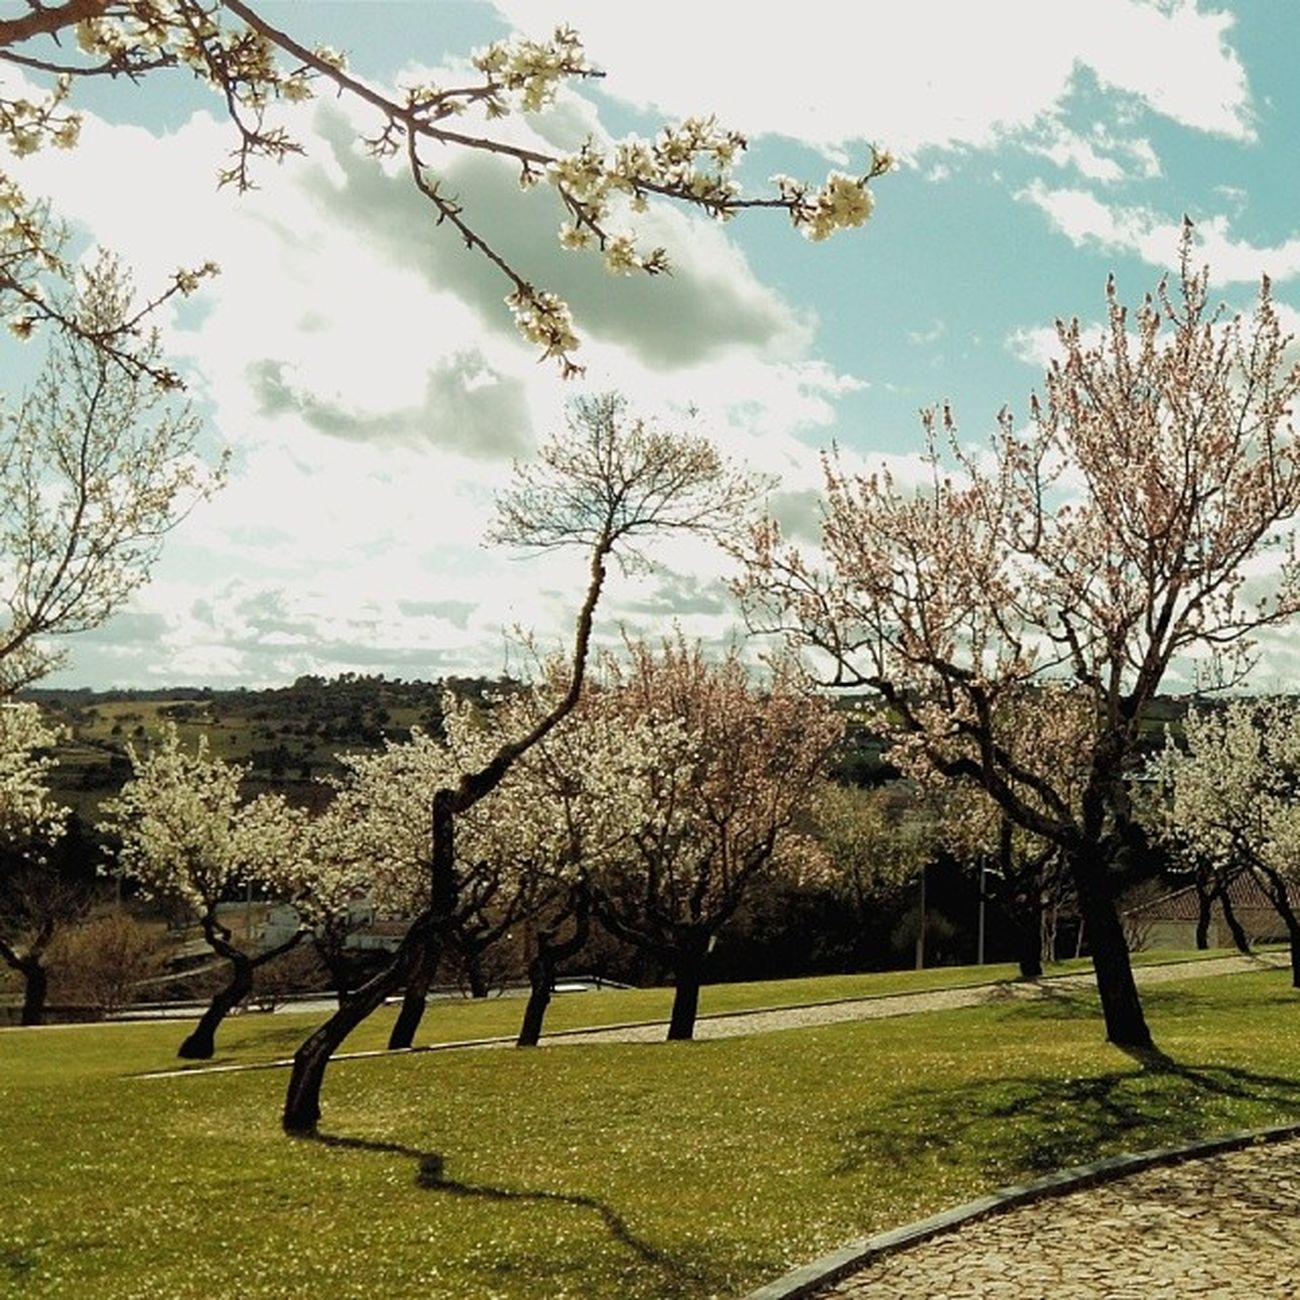 Almond trees garden #tree #trees #nature #beautiful #treesrock #forest #wood #woods #instanature #treeporn #specialbranch #branch #leafs #branches #treescollection #ilovetrees #gorgeous #beautiful #life #living #scenery #green #ic_trees Branches Ilovetrees Wood Branch Nature Treescollection Beautiful Instanature Living Treesrock Leafs Specialbranch Green Trees Ic_trees Scenery Life Tree Gorgeous Woods Forest TreePorn